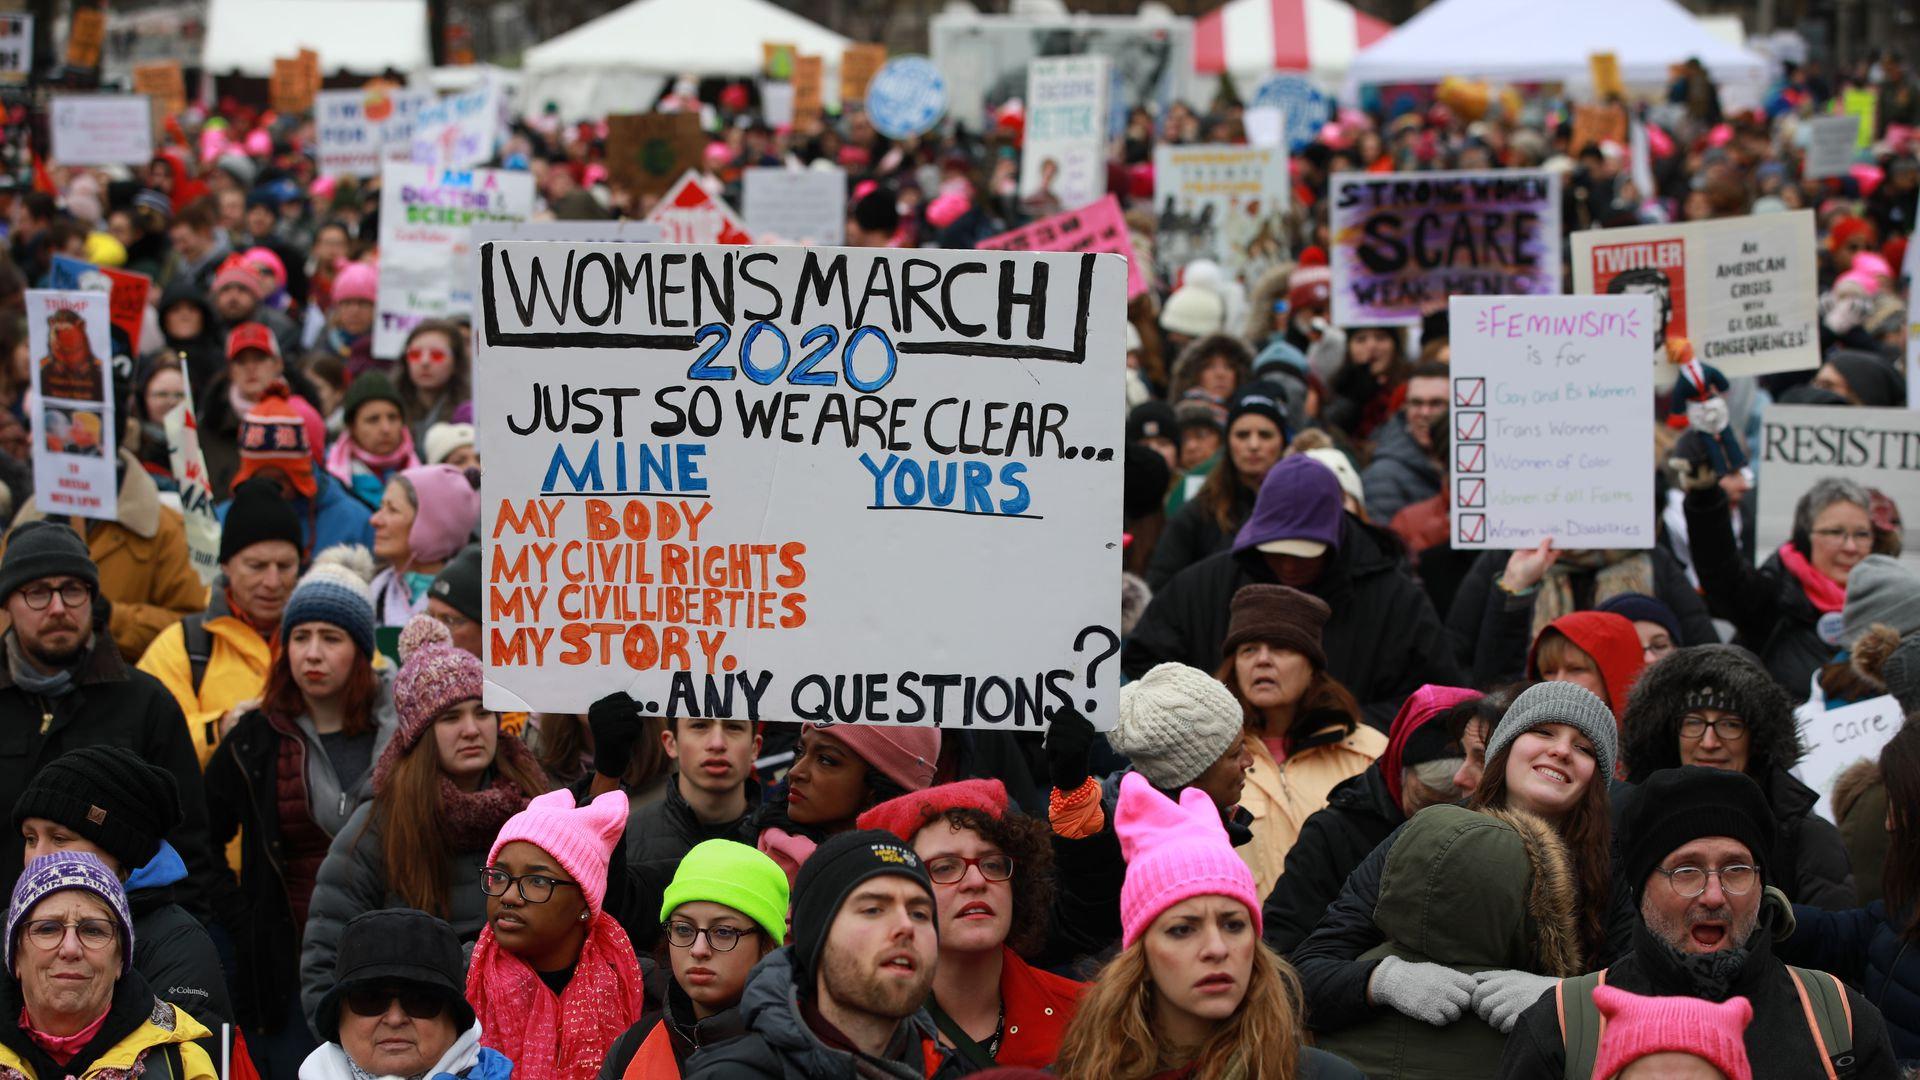 In photos: Women's March 2020 protests around the U.S.